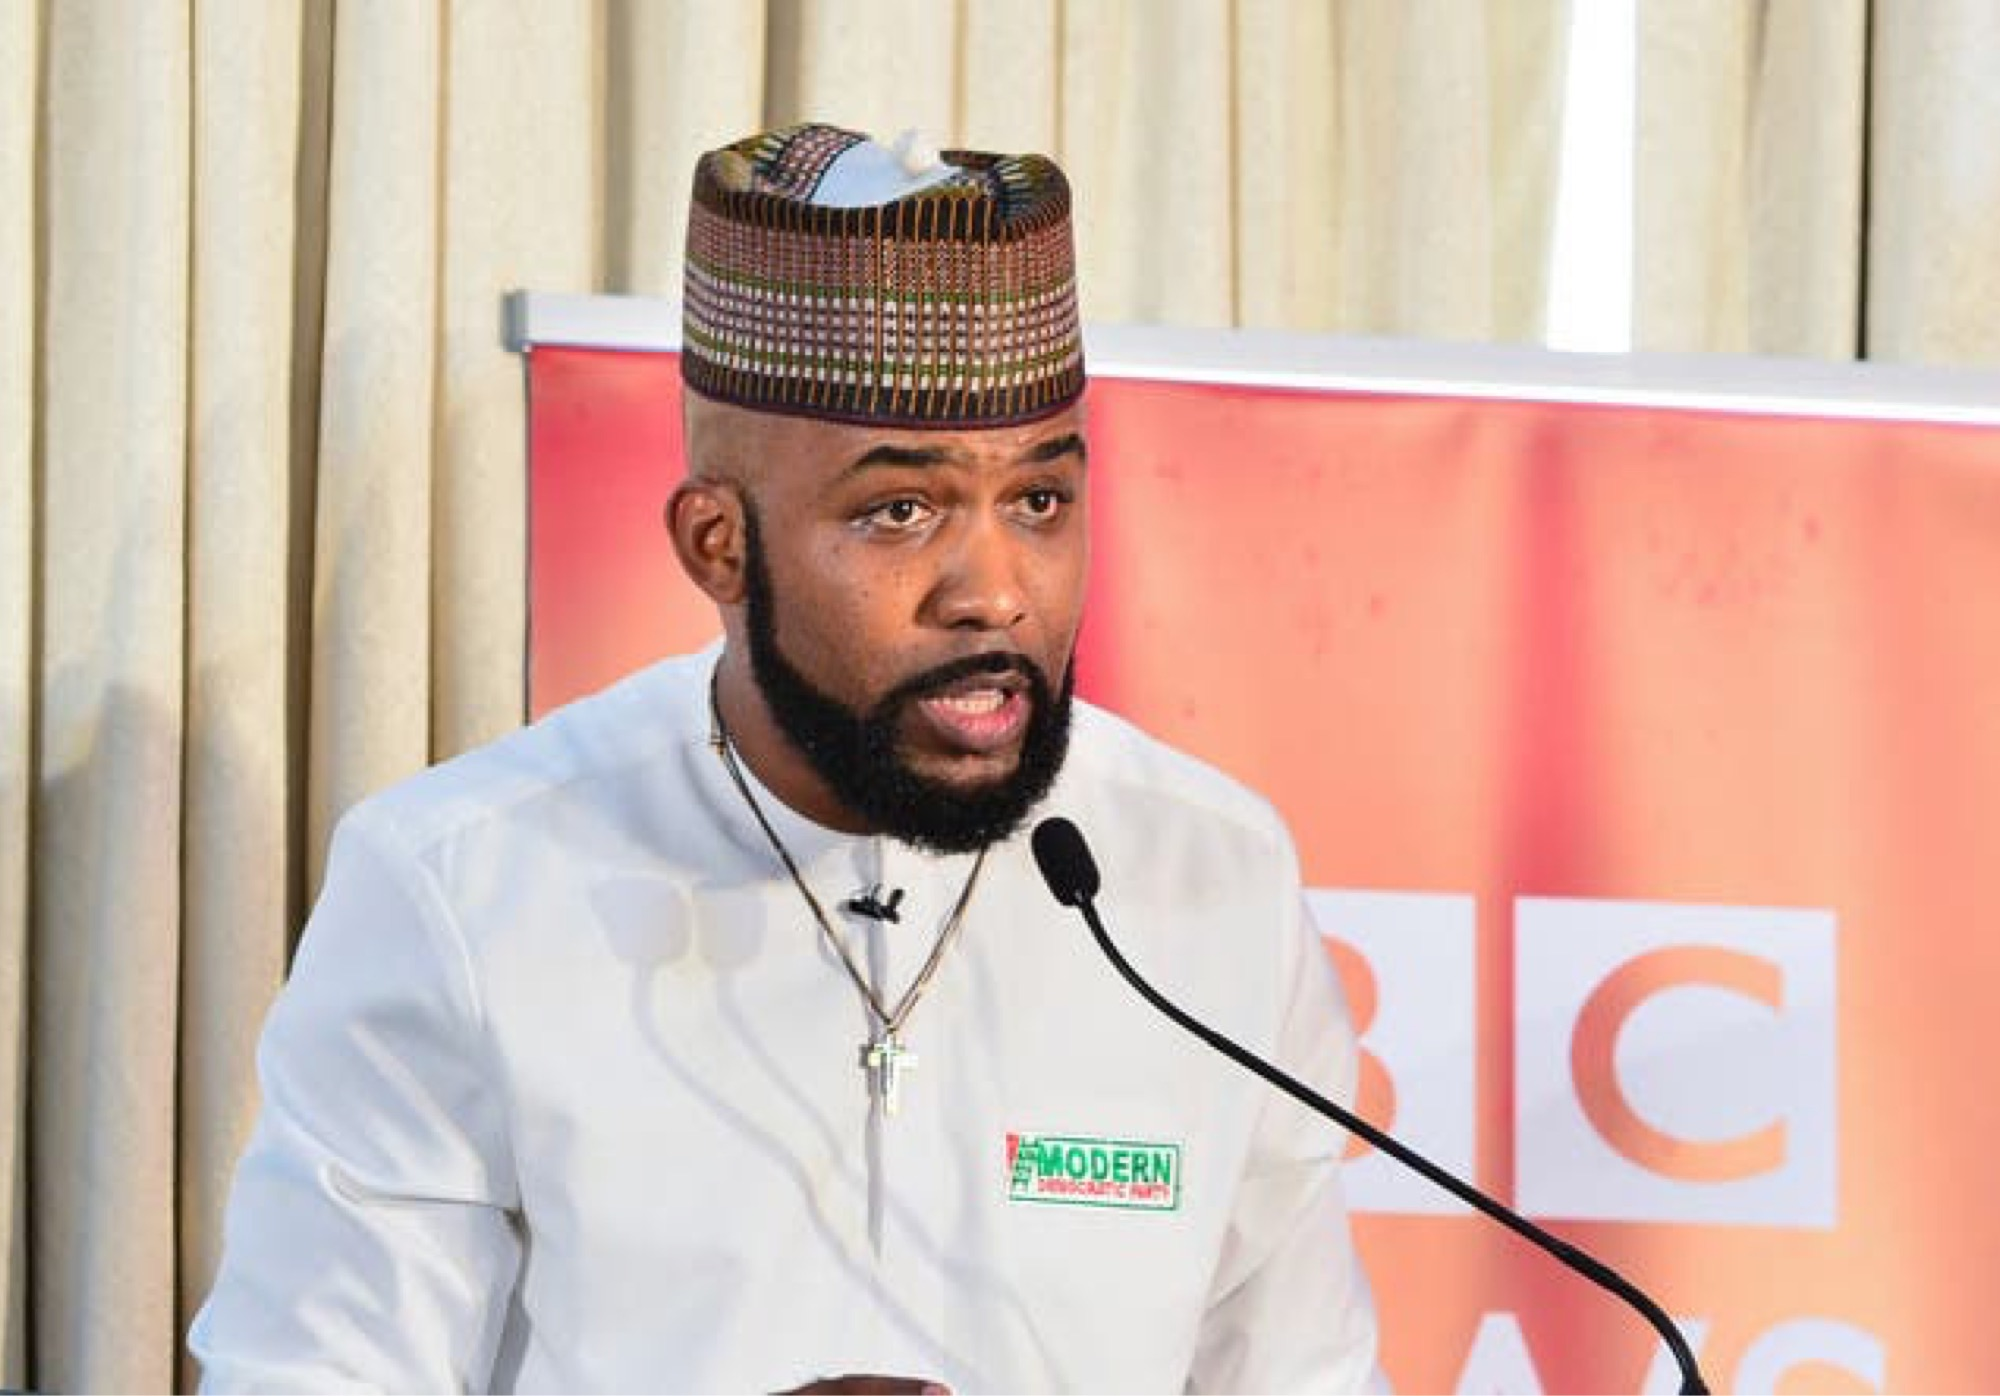 #EndSARS: Police Should Be Made To Pay Hefty Damages To Families Of Their Victims' - Banky W